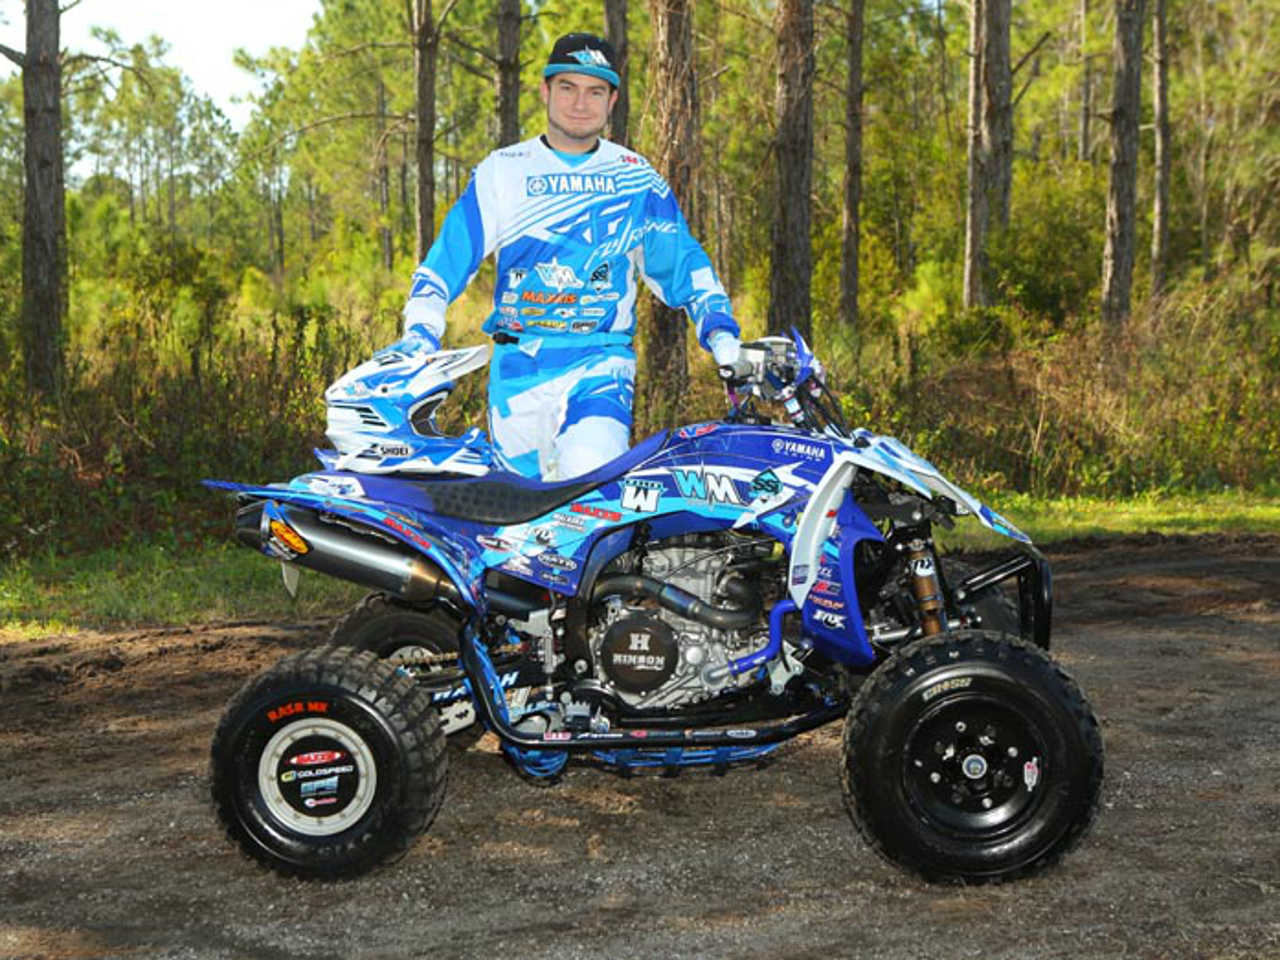 Yamaha atv racing takes 2014 ama mx gncc and quadx series for 2014 yamaha atv